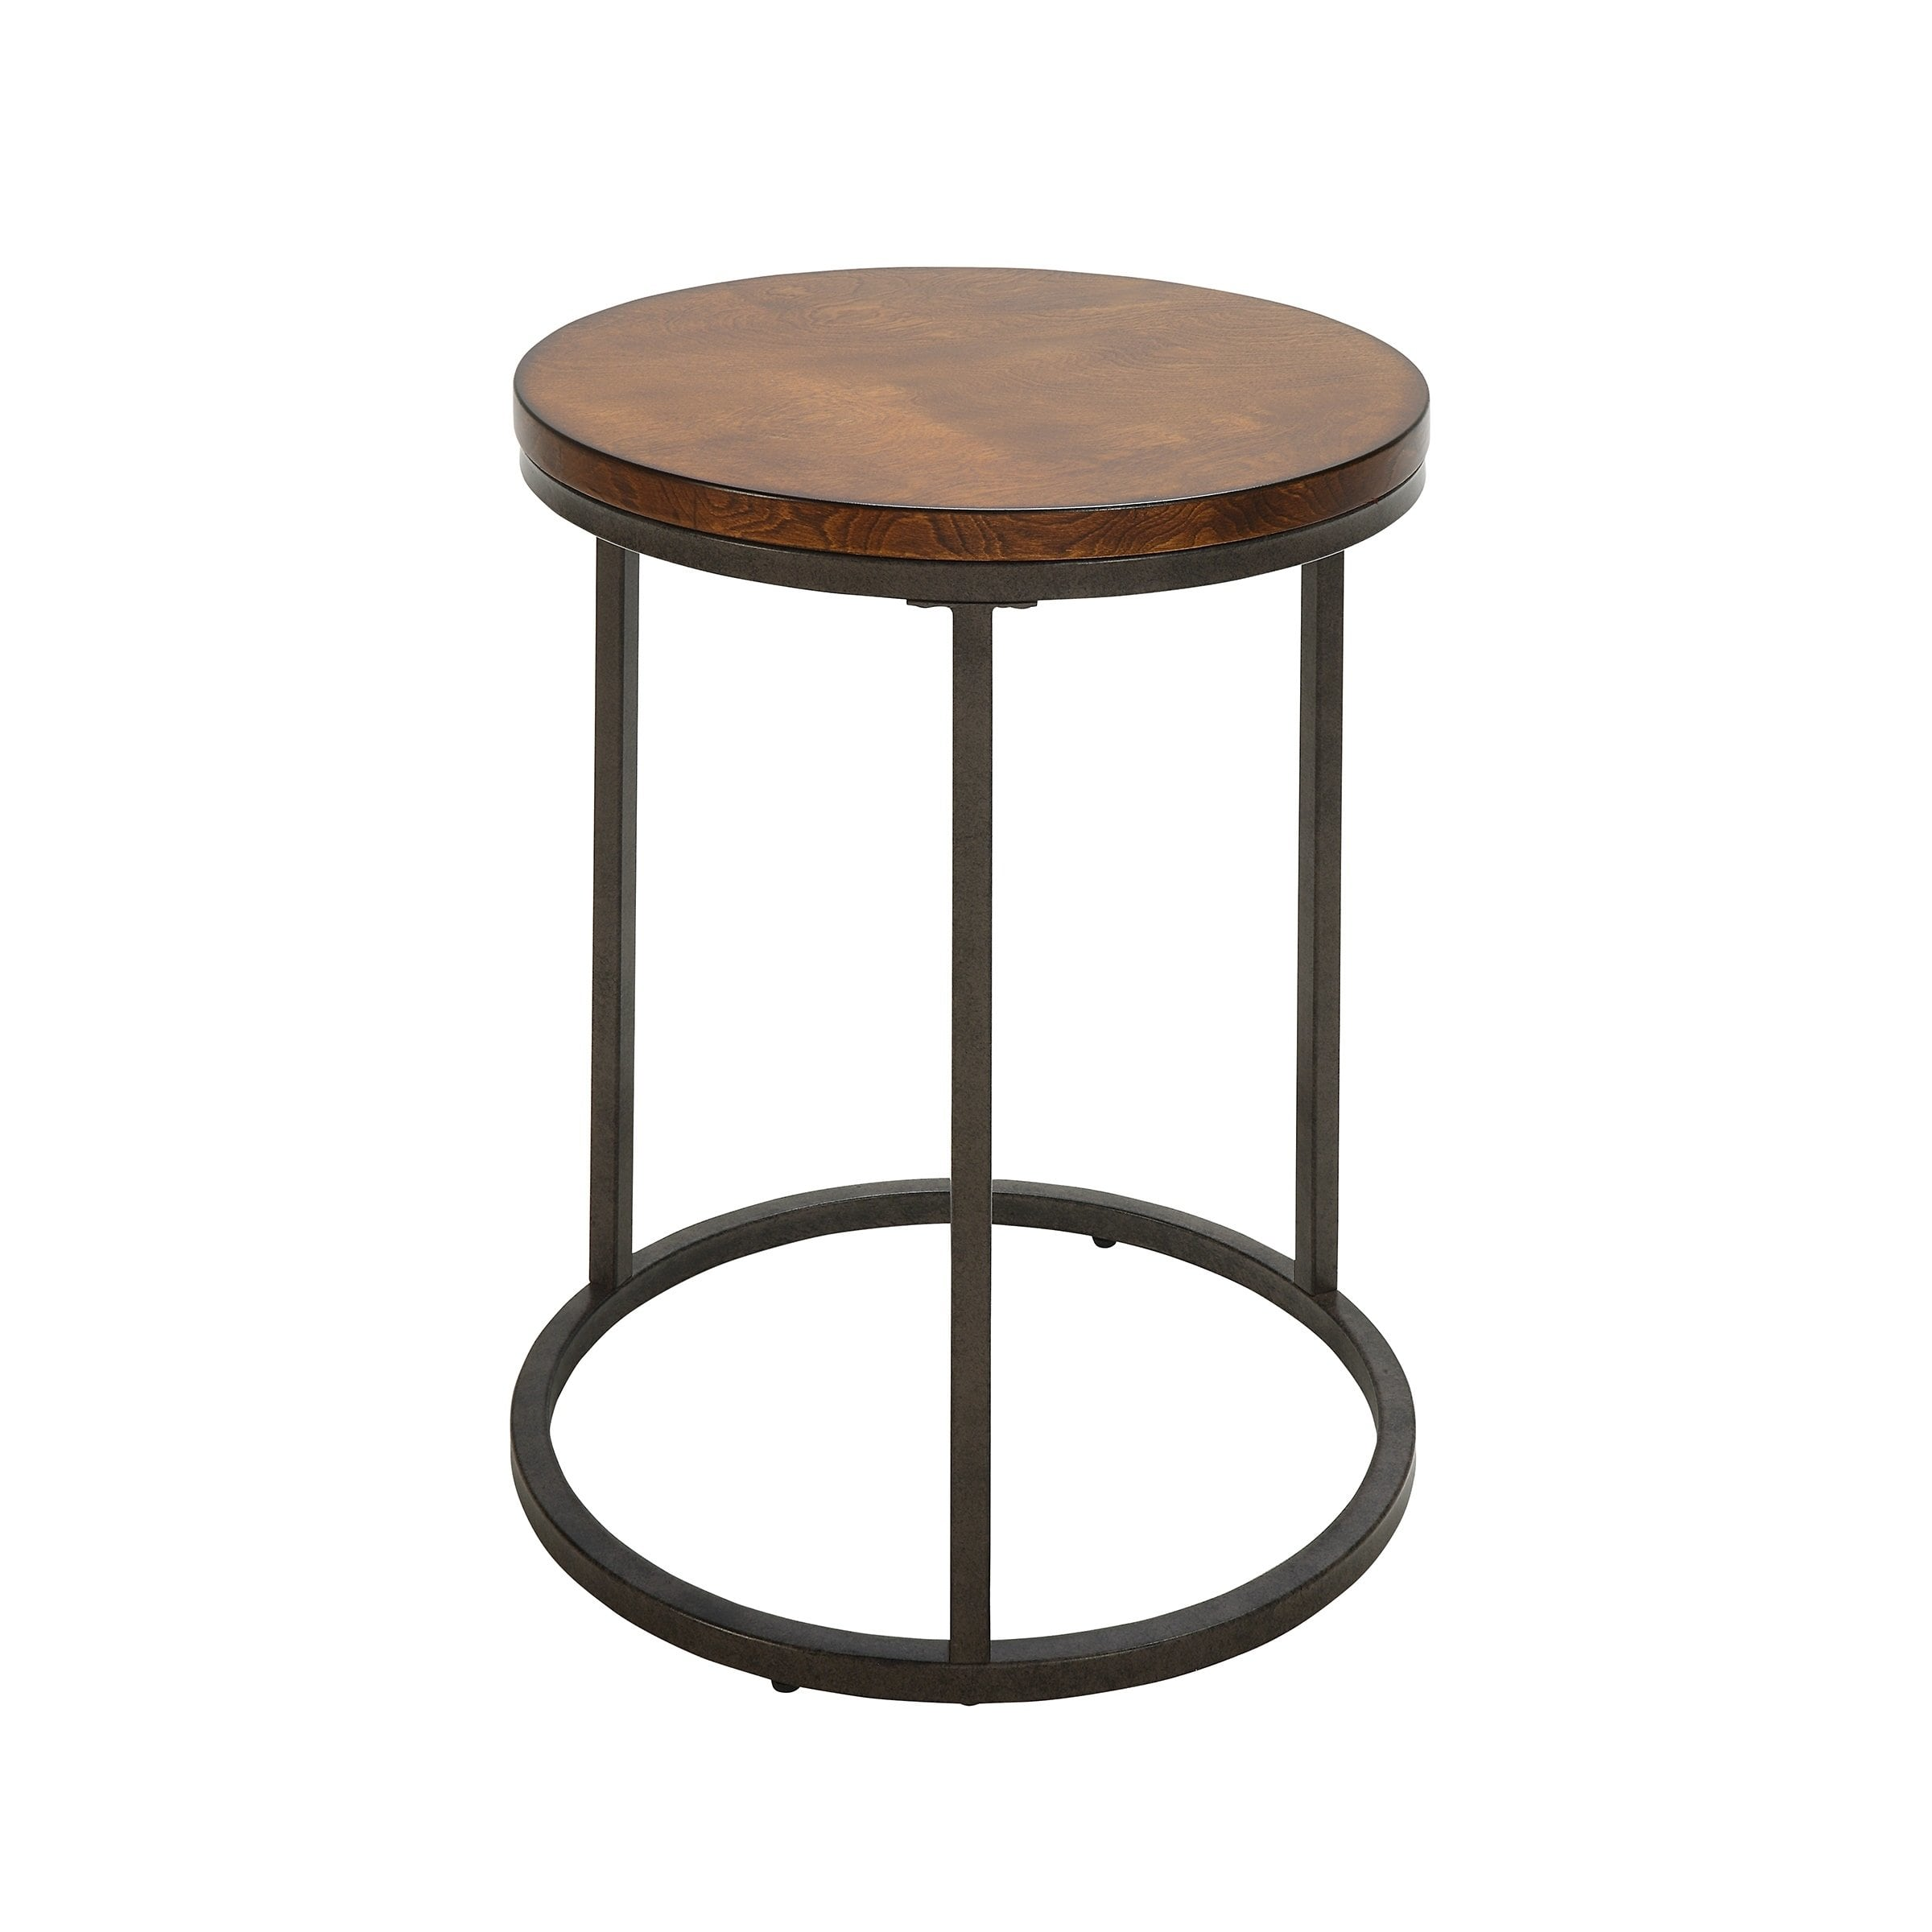 britta inch round thick top chestnut accent table free shipping today tiffany crystal lamps white and silver nightstand coloring tablecloth bronze solid oak end with drawer cotton